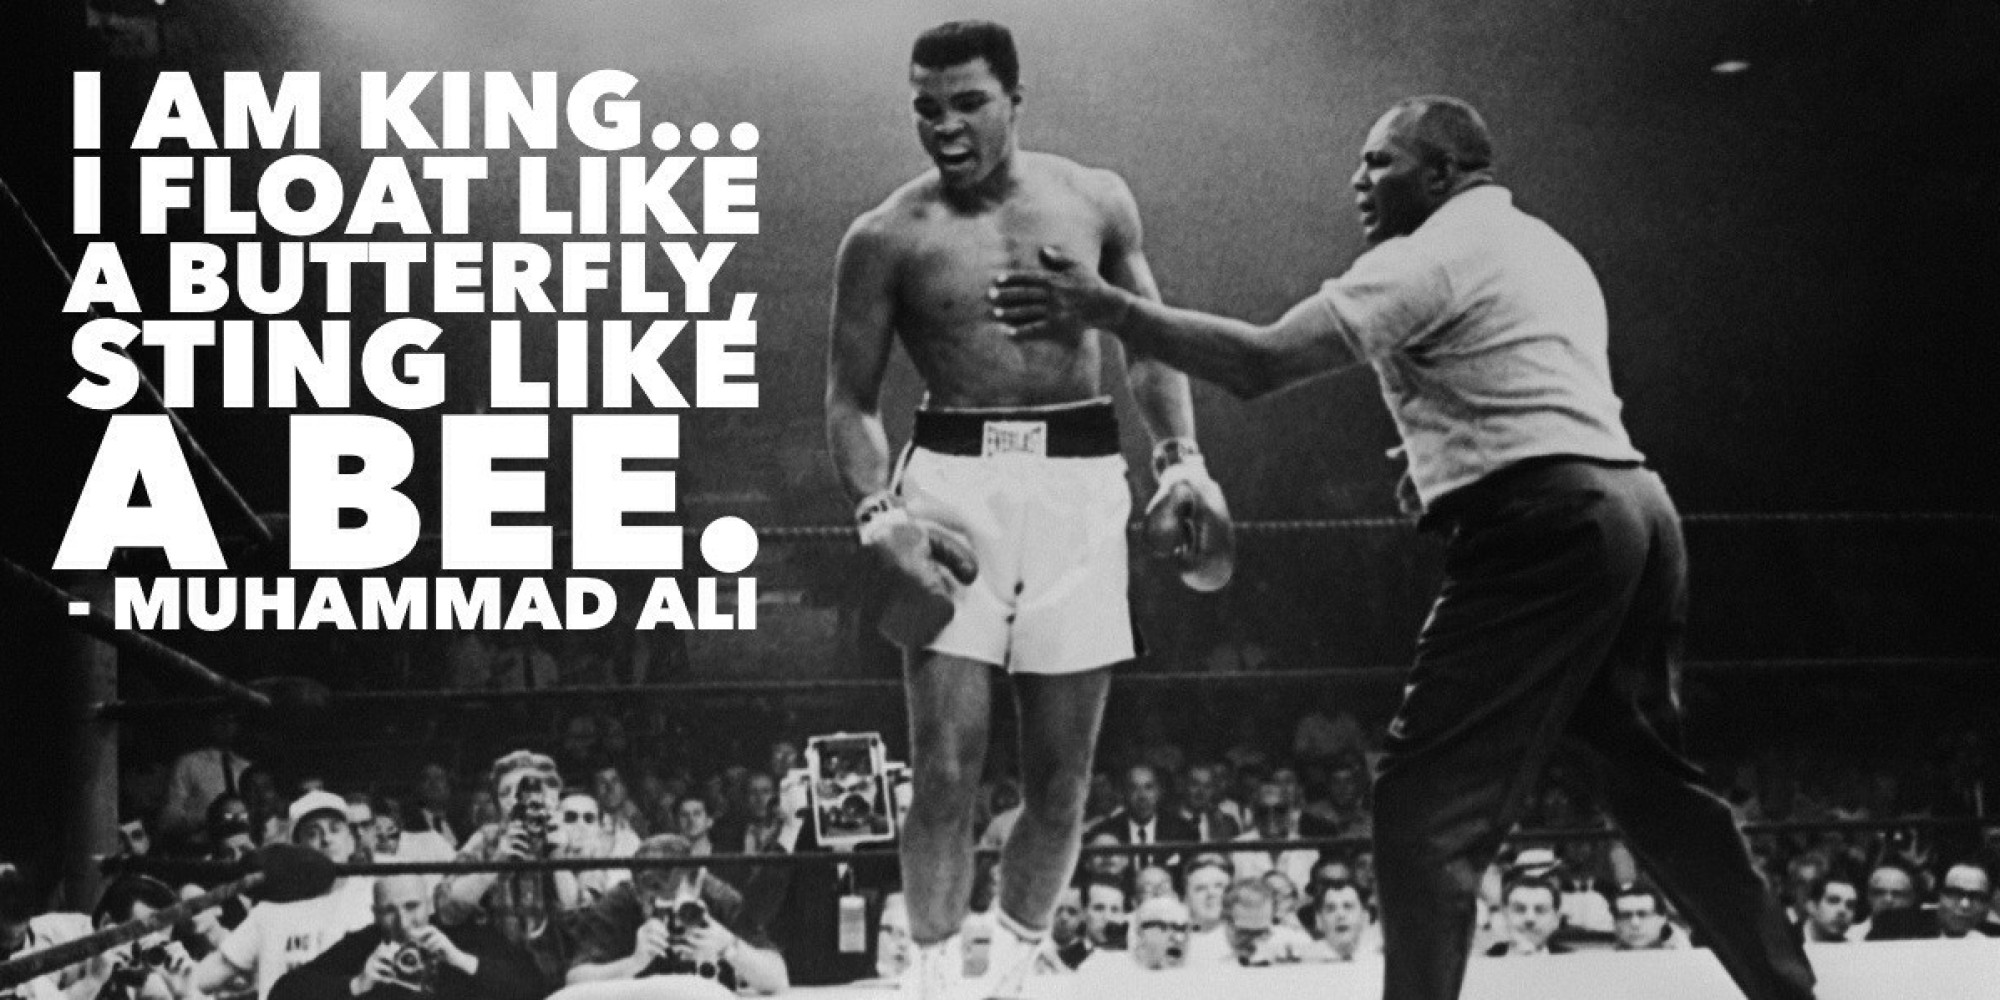 Muhammad Ali Defeated Sonny Liston To Become The Heavyweight Boxing Champion 50 Years Ago Today VIDEO